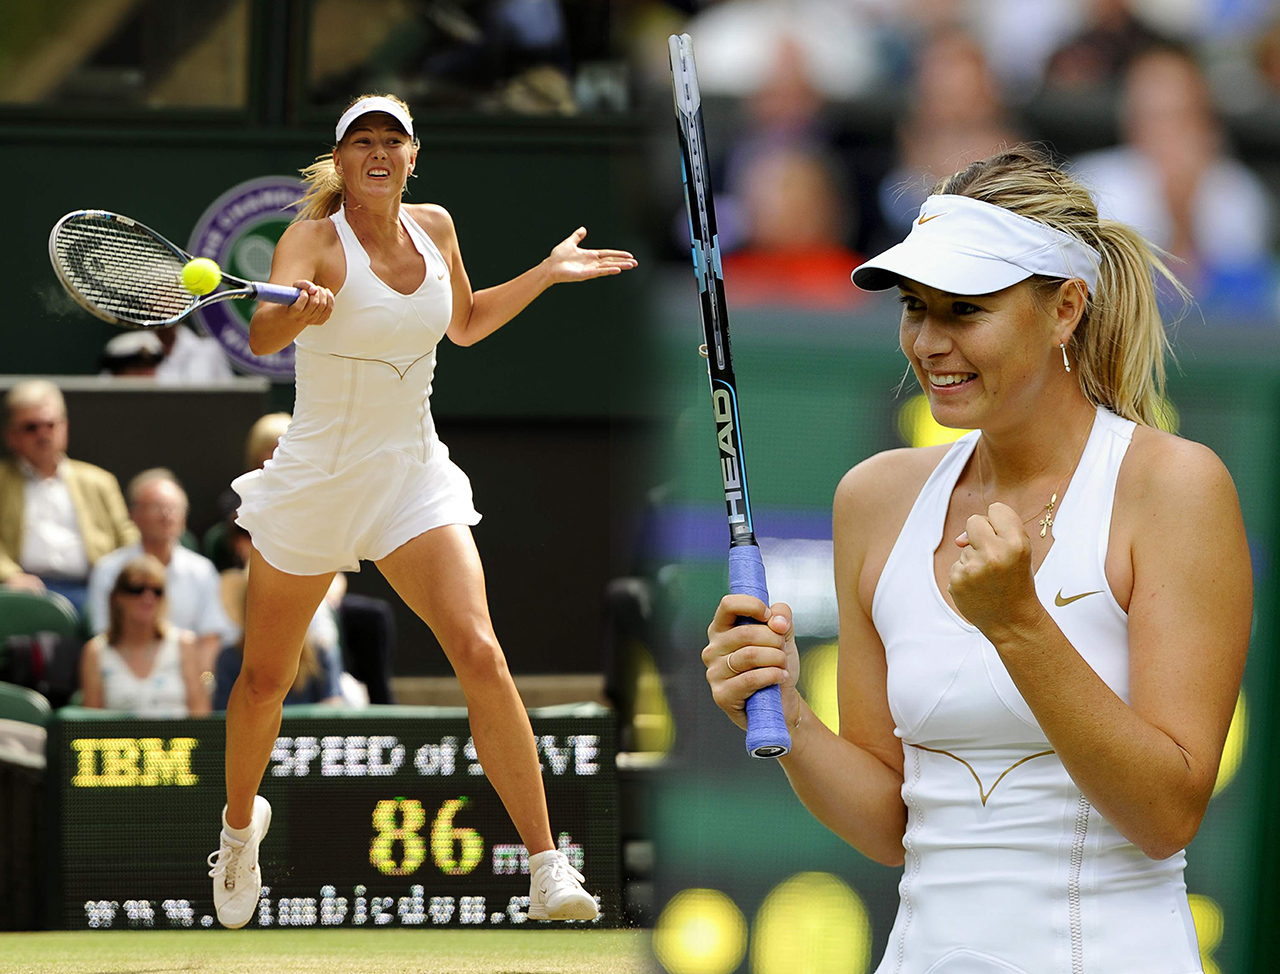 Maria Sharapova - Wimbledon 2011 - Semi-Final - 30-06-11